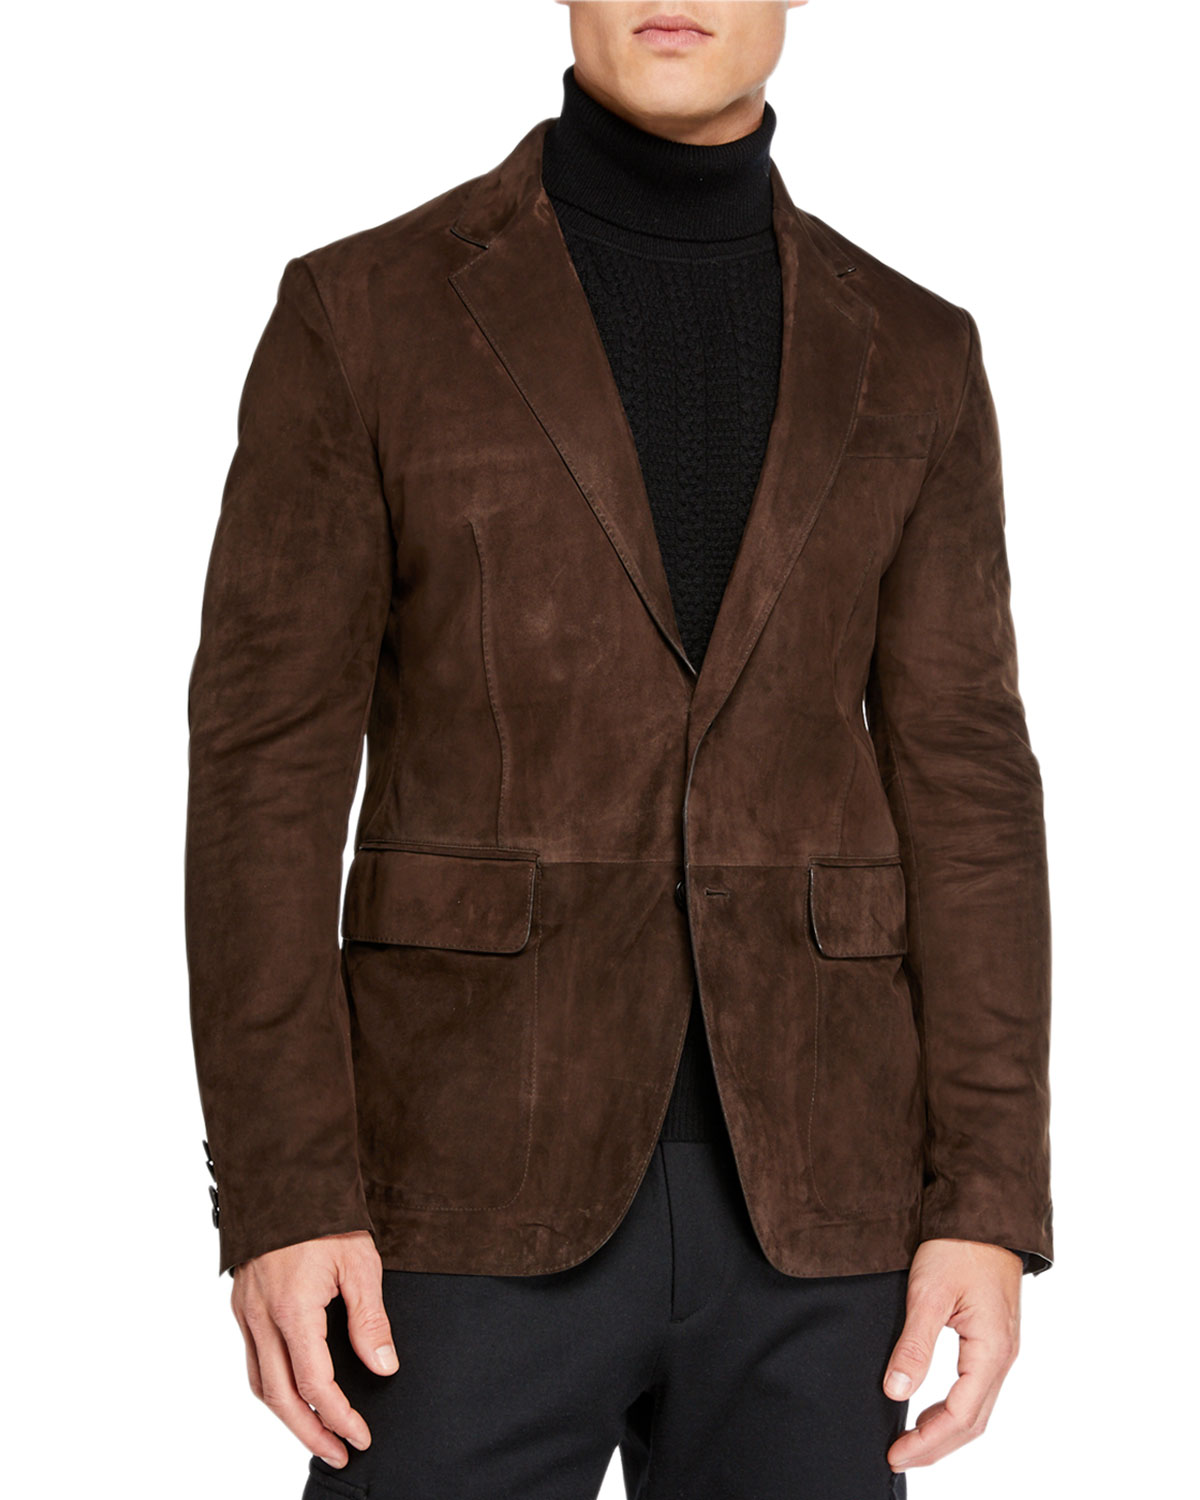 Ermenegildo Zegna Men's Suede Two-Button Jacket